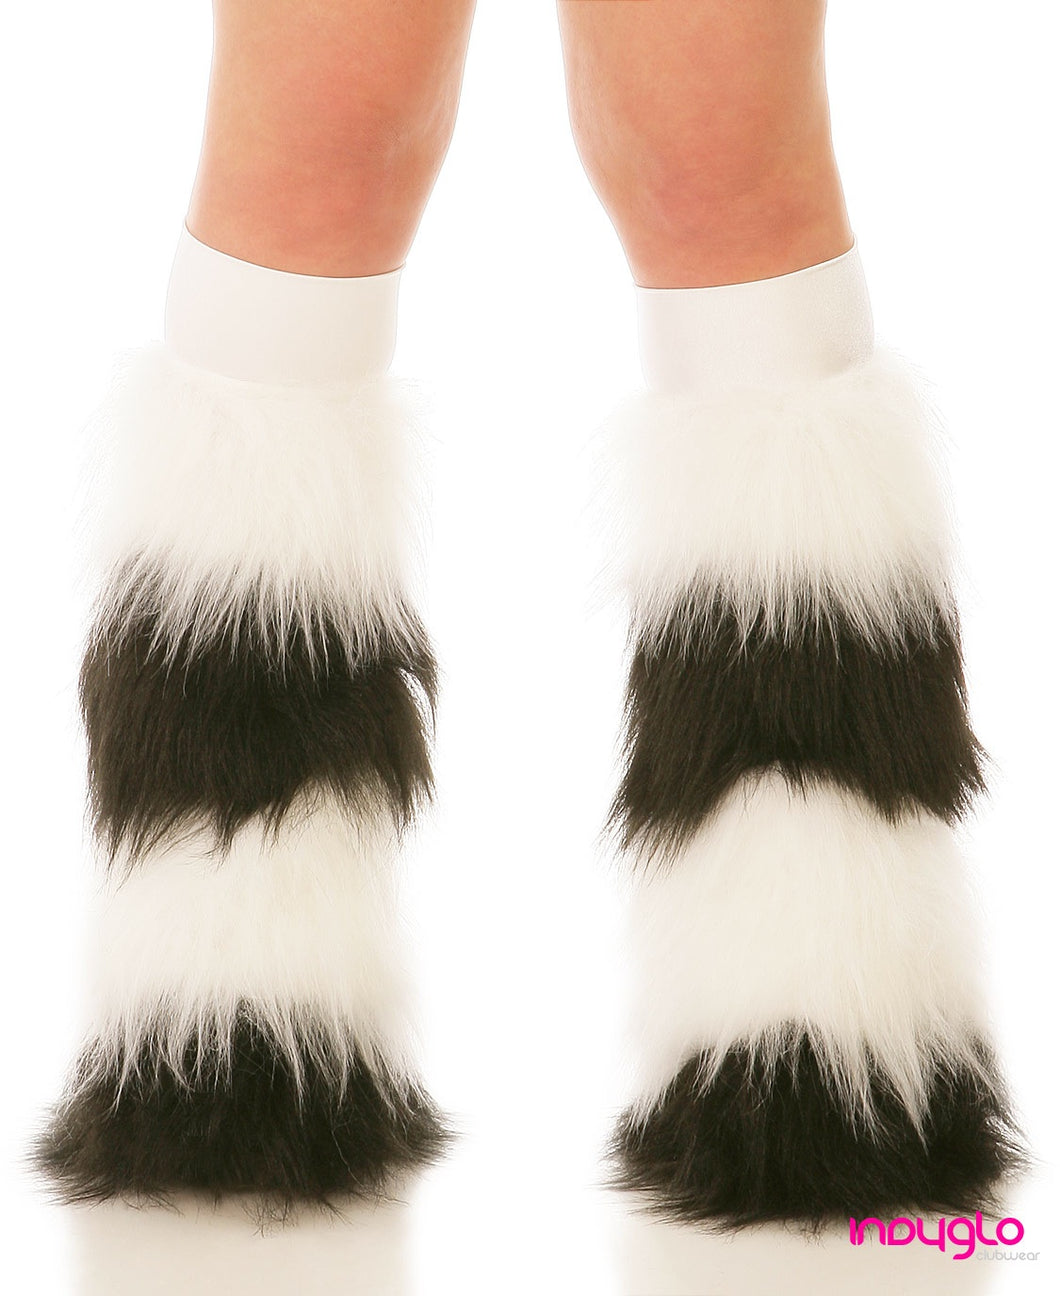 White & Black Quad Fluffies with White Knee Bands